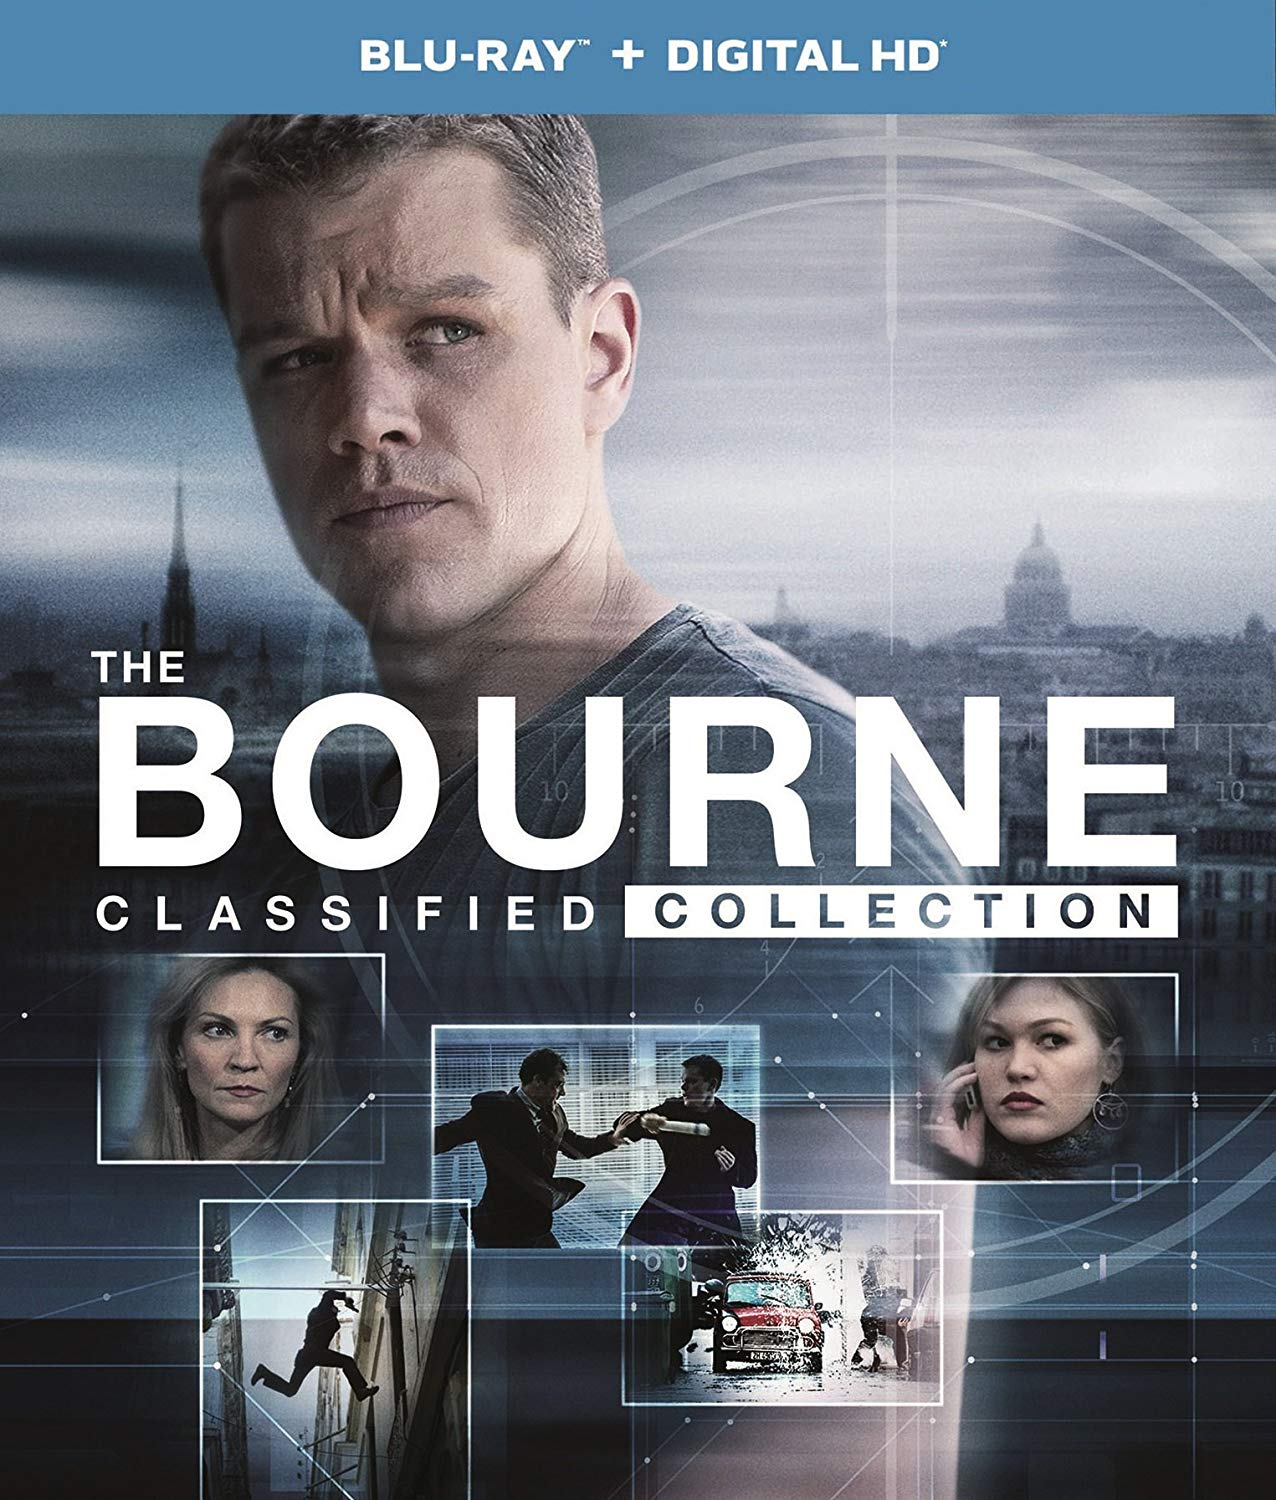 The Bourne Classified Collection (Blu-ray + Digital HD)